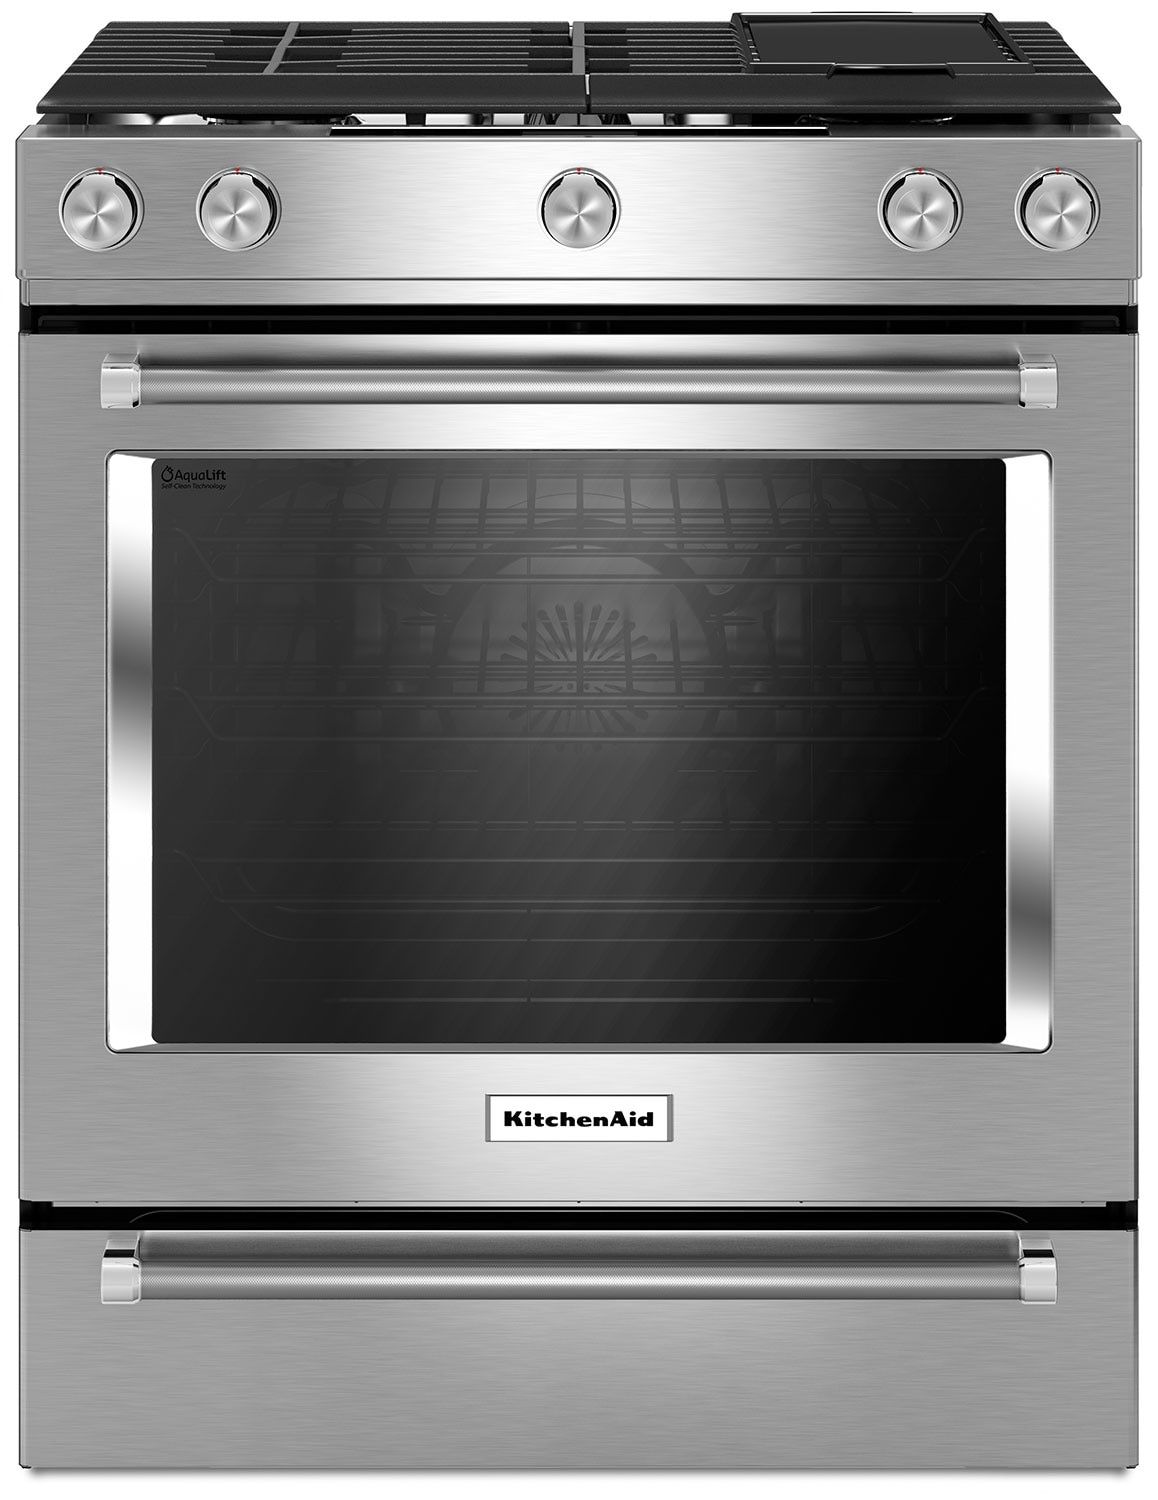 "KitchenAid 30"" Gas Convection Range with Baking Drawer - Stainless Steel"